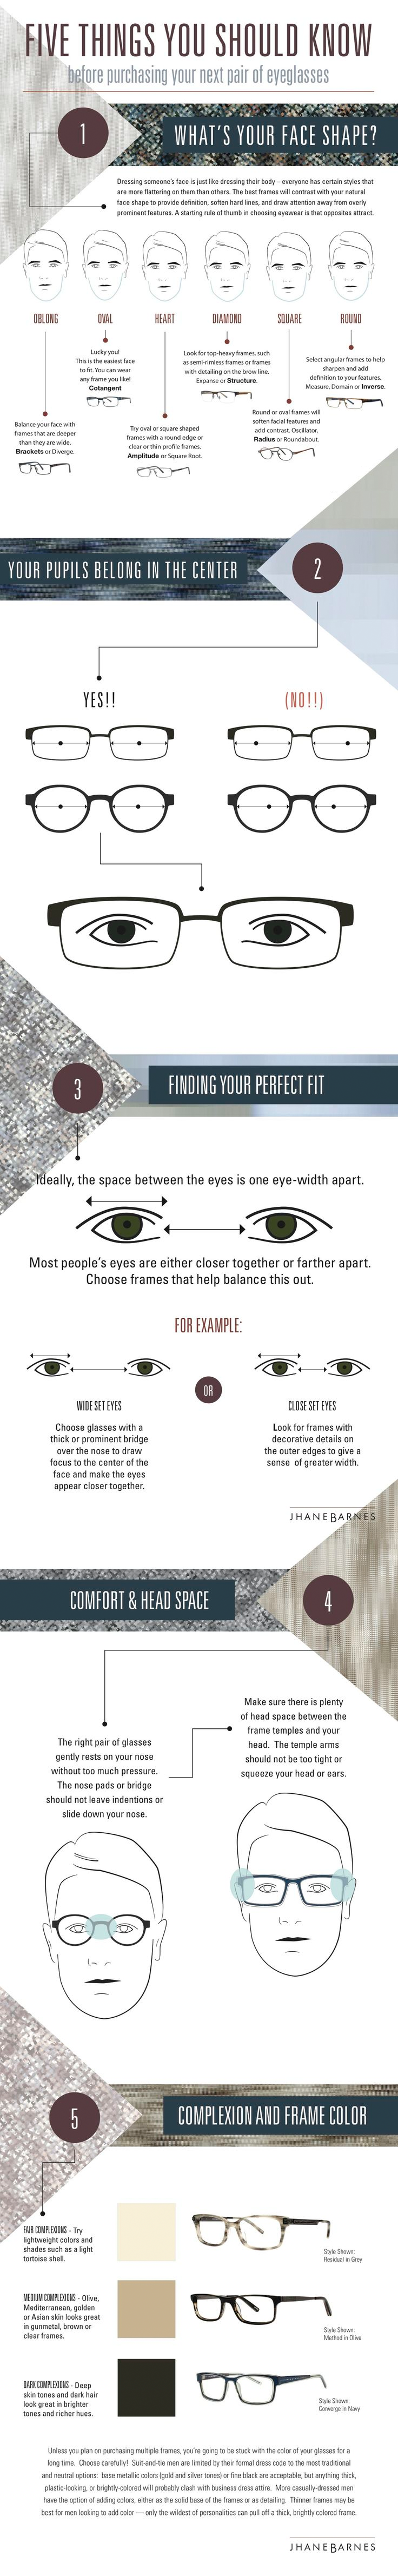 #SeeLifeClearly - Five Things To Know Before Purchasing Your Next Eyeglasses